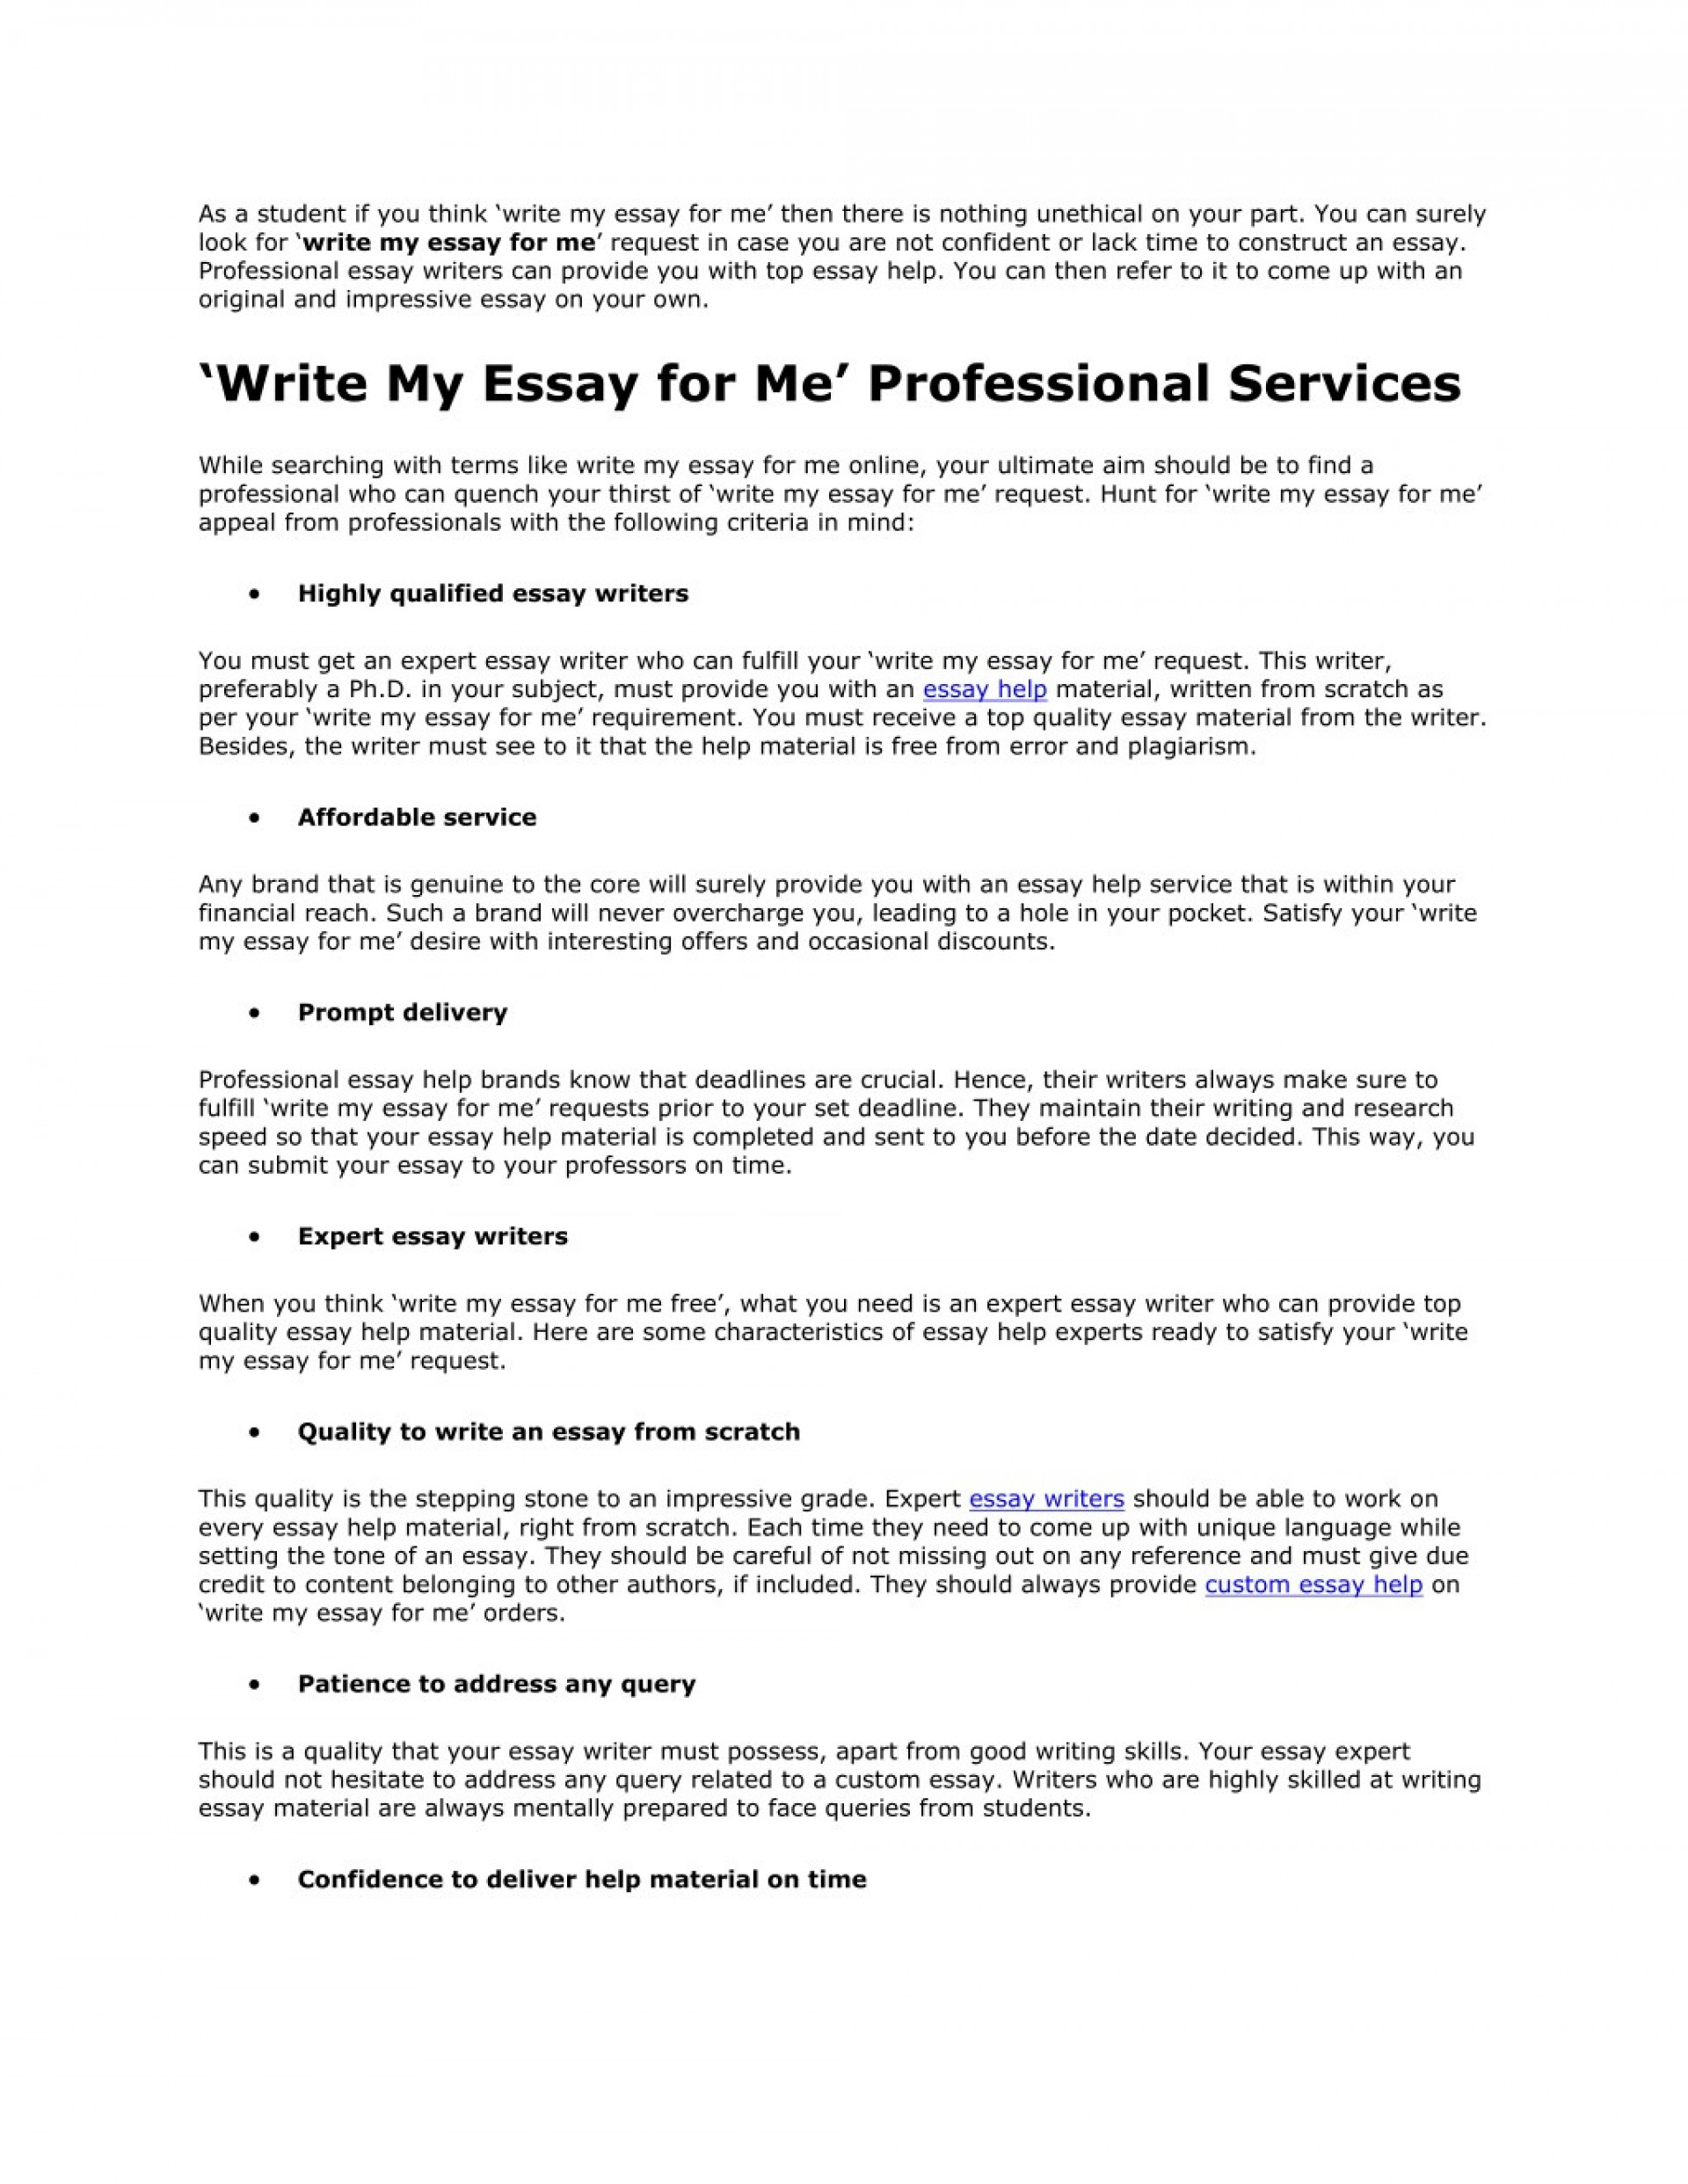 017 Write My Essay For Me Example As Student If You Think Surprising Free Canada Online 1920